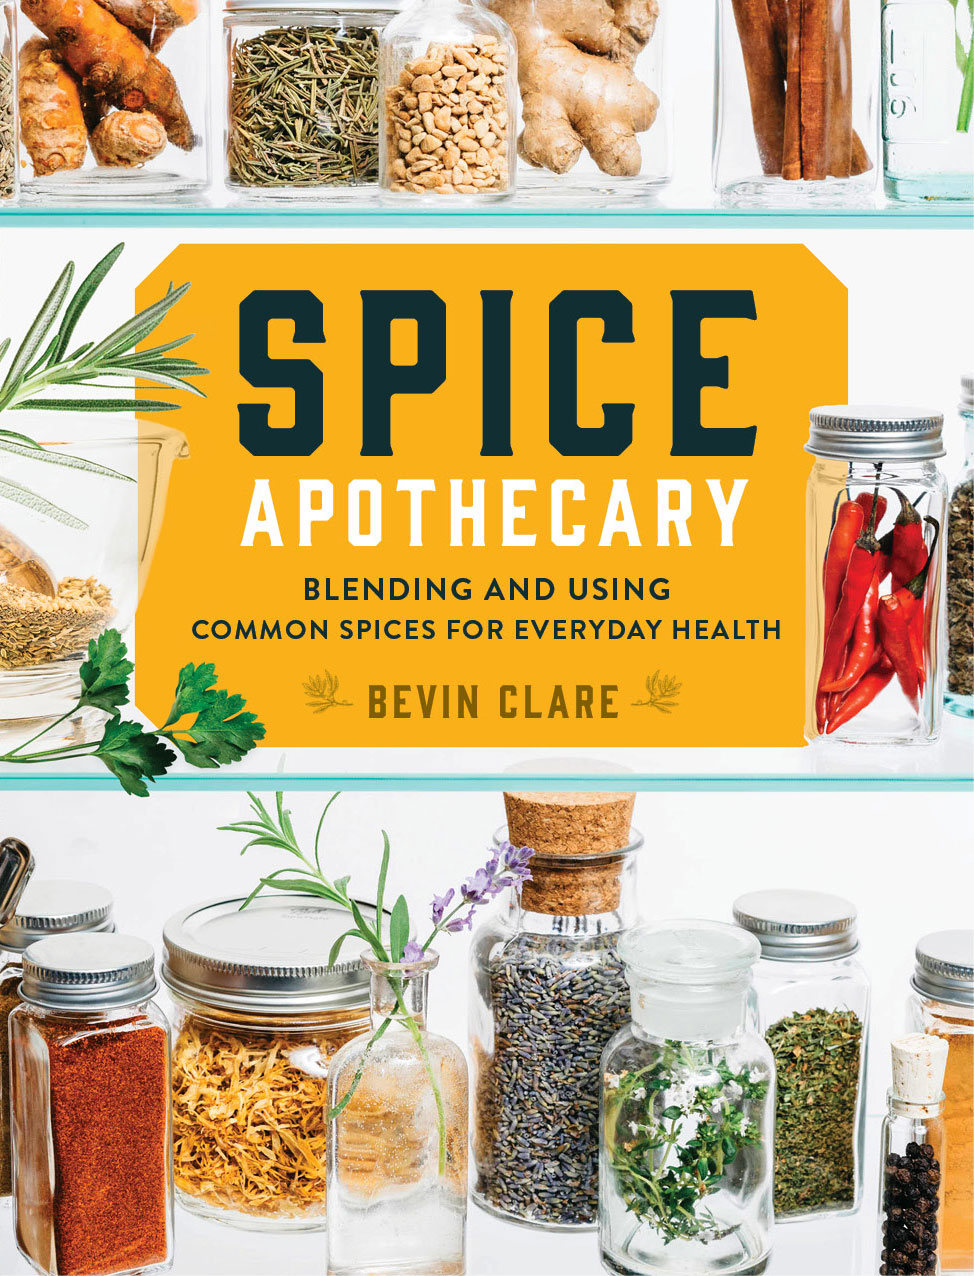 Spice Apothecary book cover by Bevin Clare